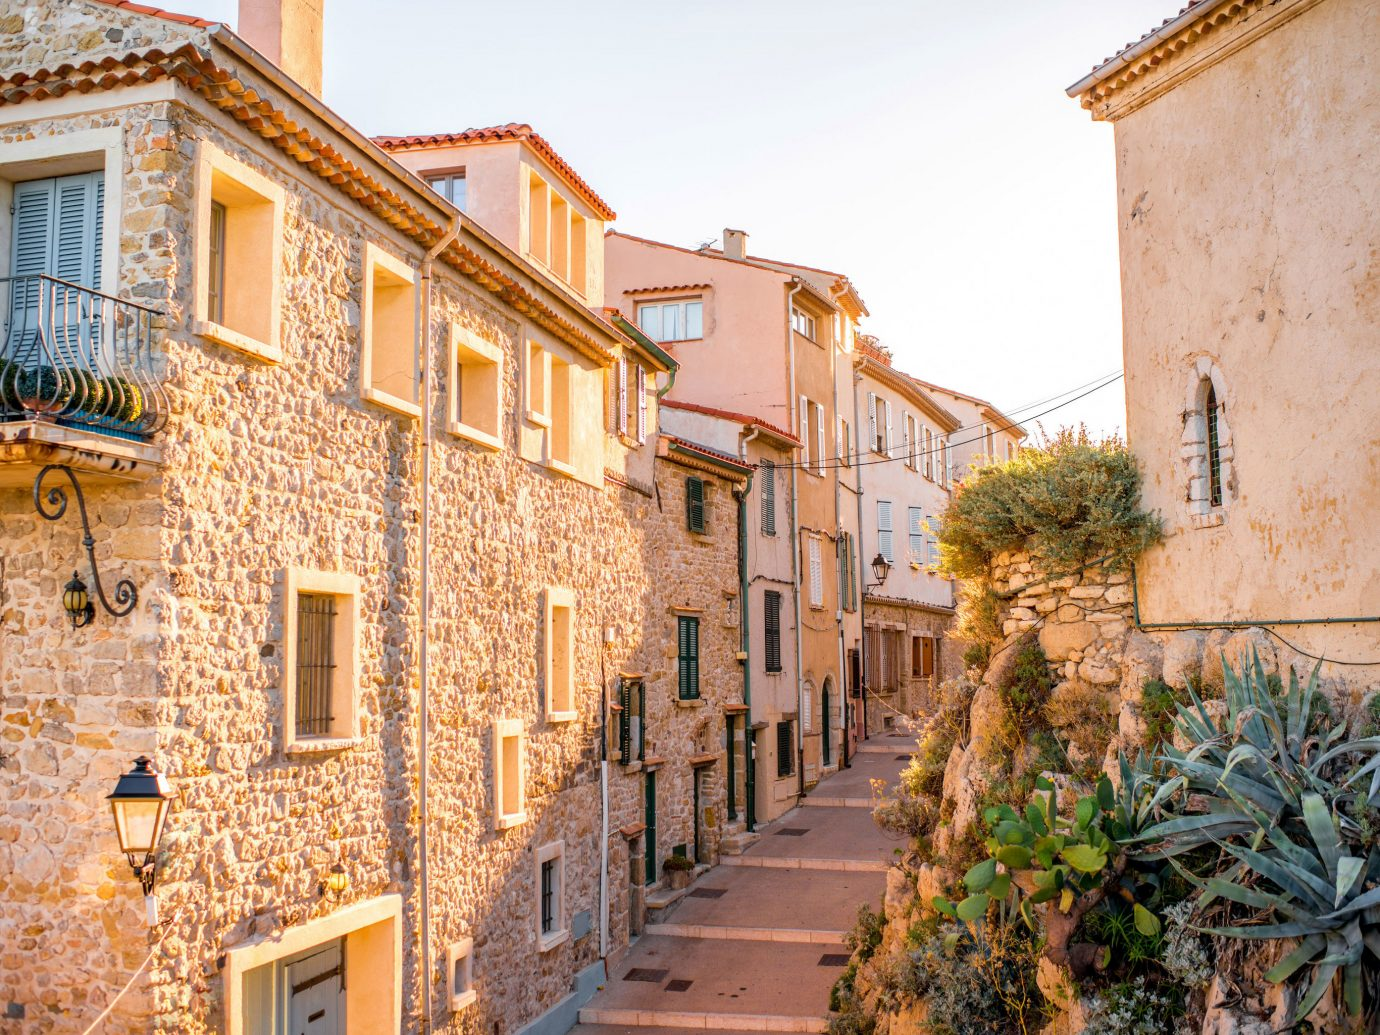 Hotels Travel Tips Trip Ideas building outdoor Town neighbourhood road property street house human settlement wall alley Village residential area brick facade estate infrastructure waterway apartment stone